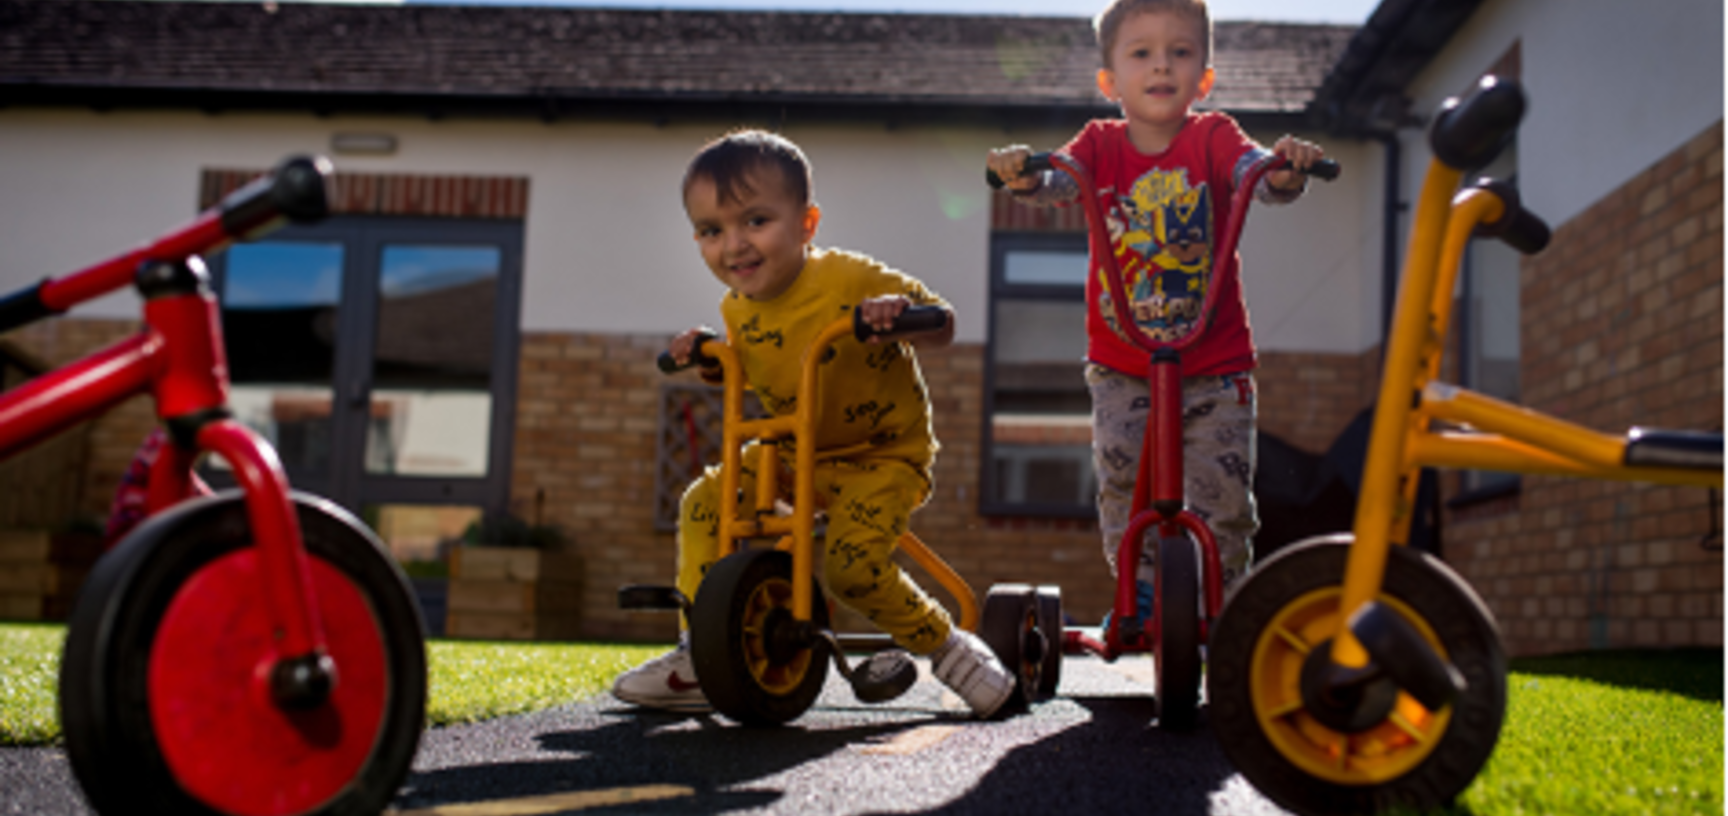 children on bikes in sunny garden